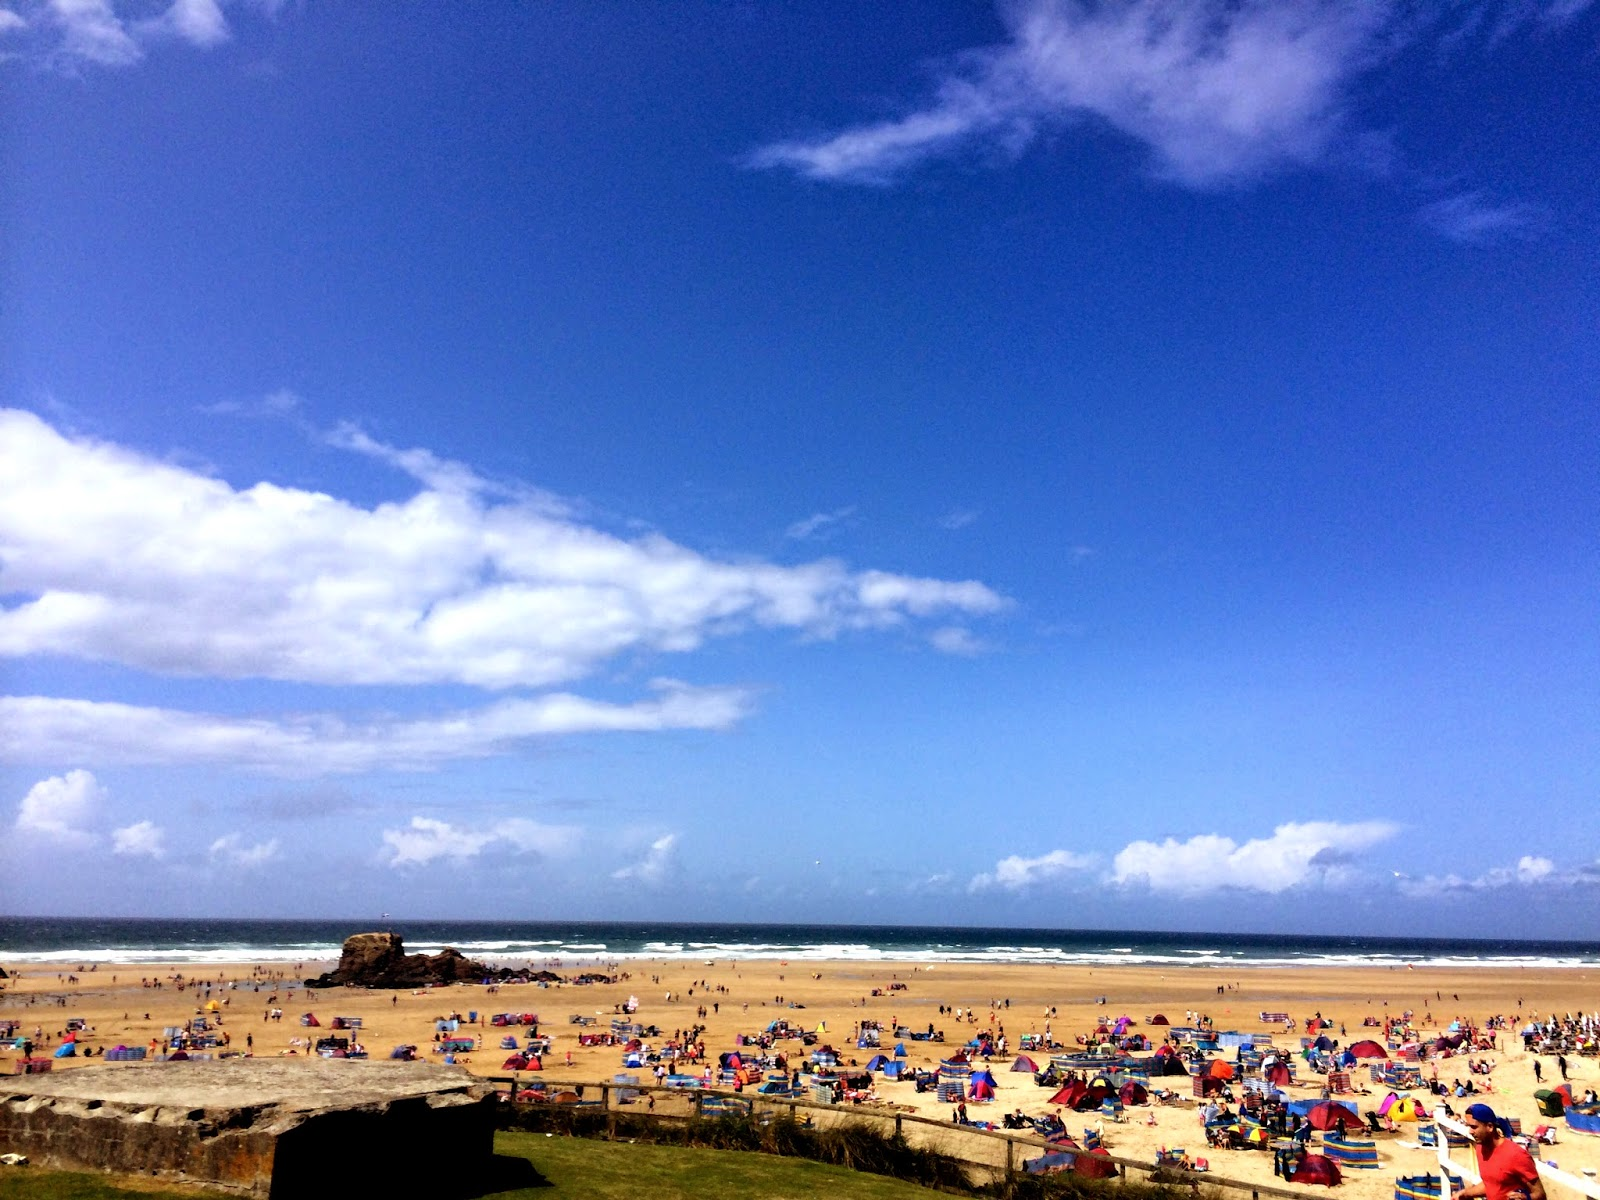 Blue skies and golden sands in Perranporth, Cornwall